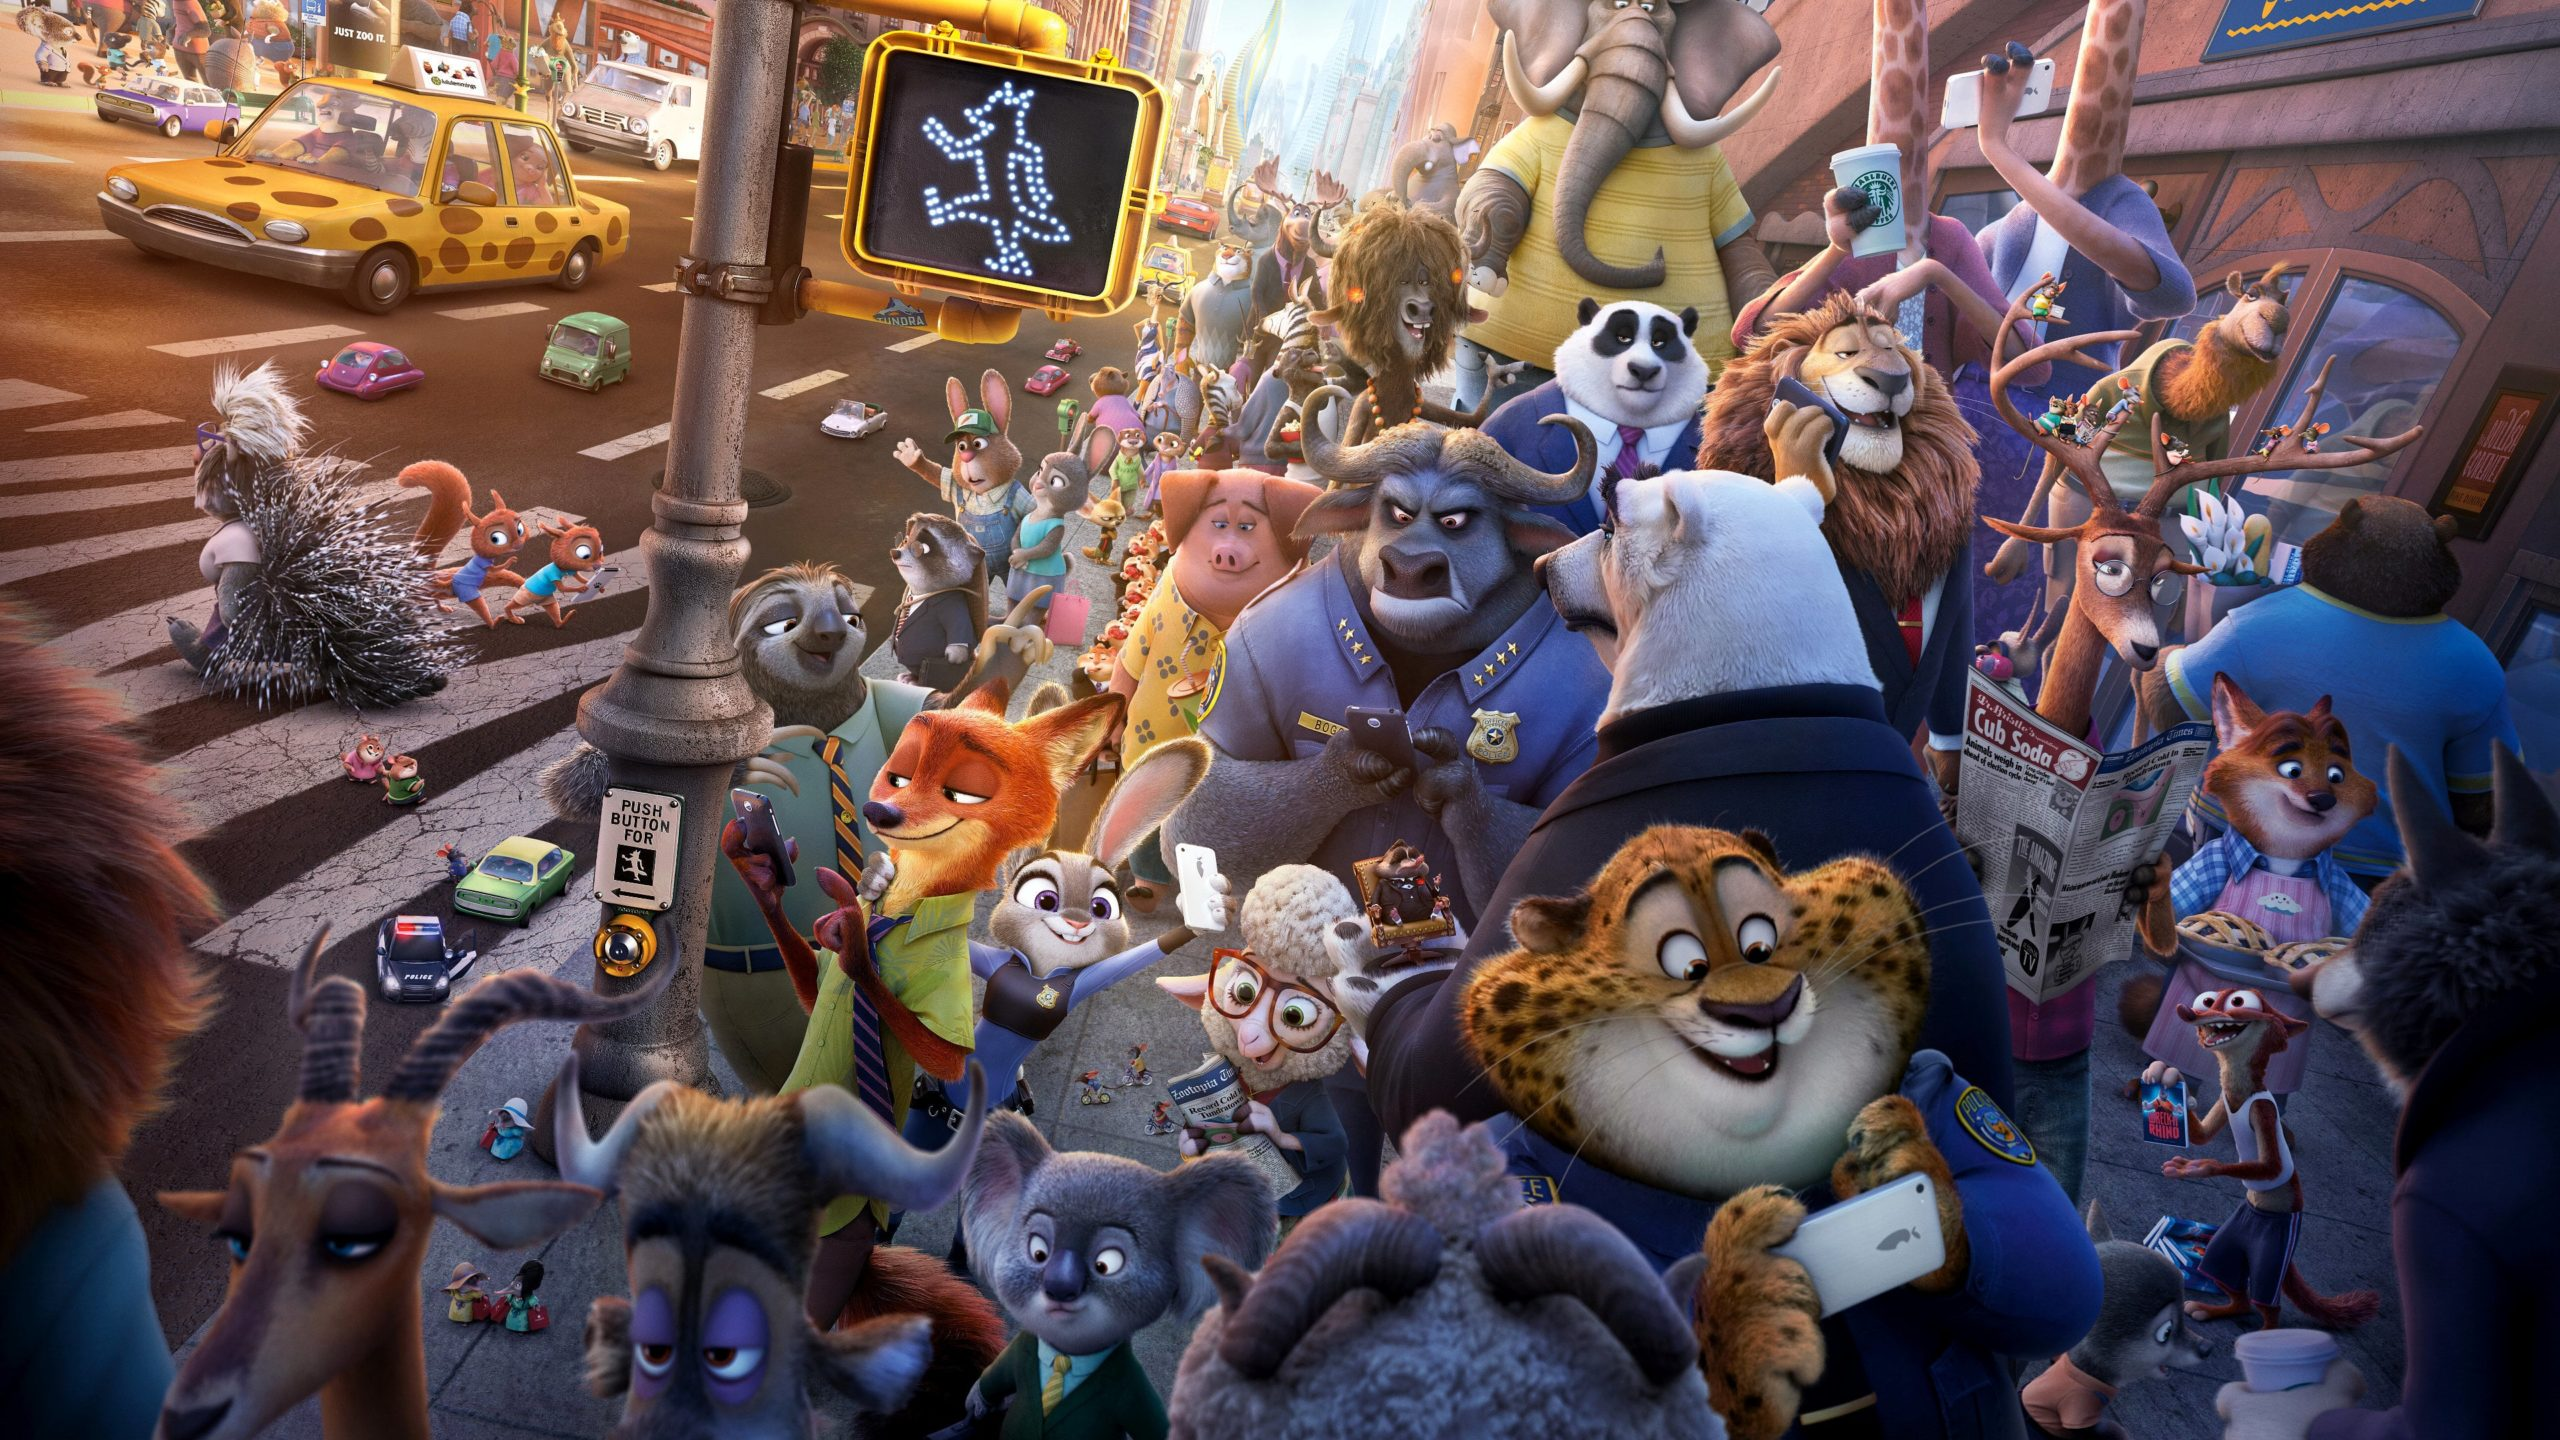 Disney movie franchise Zootopia was a brilliant Disney animated movie